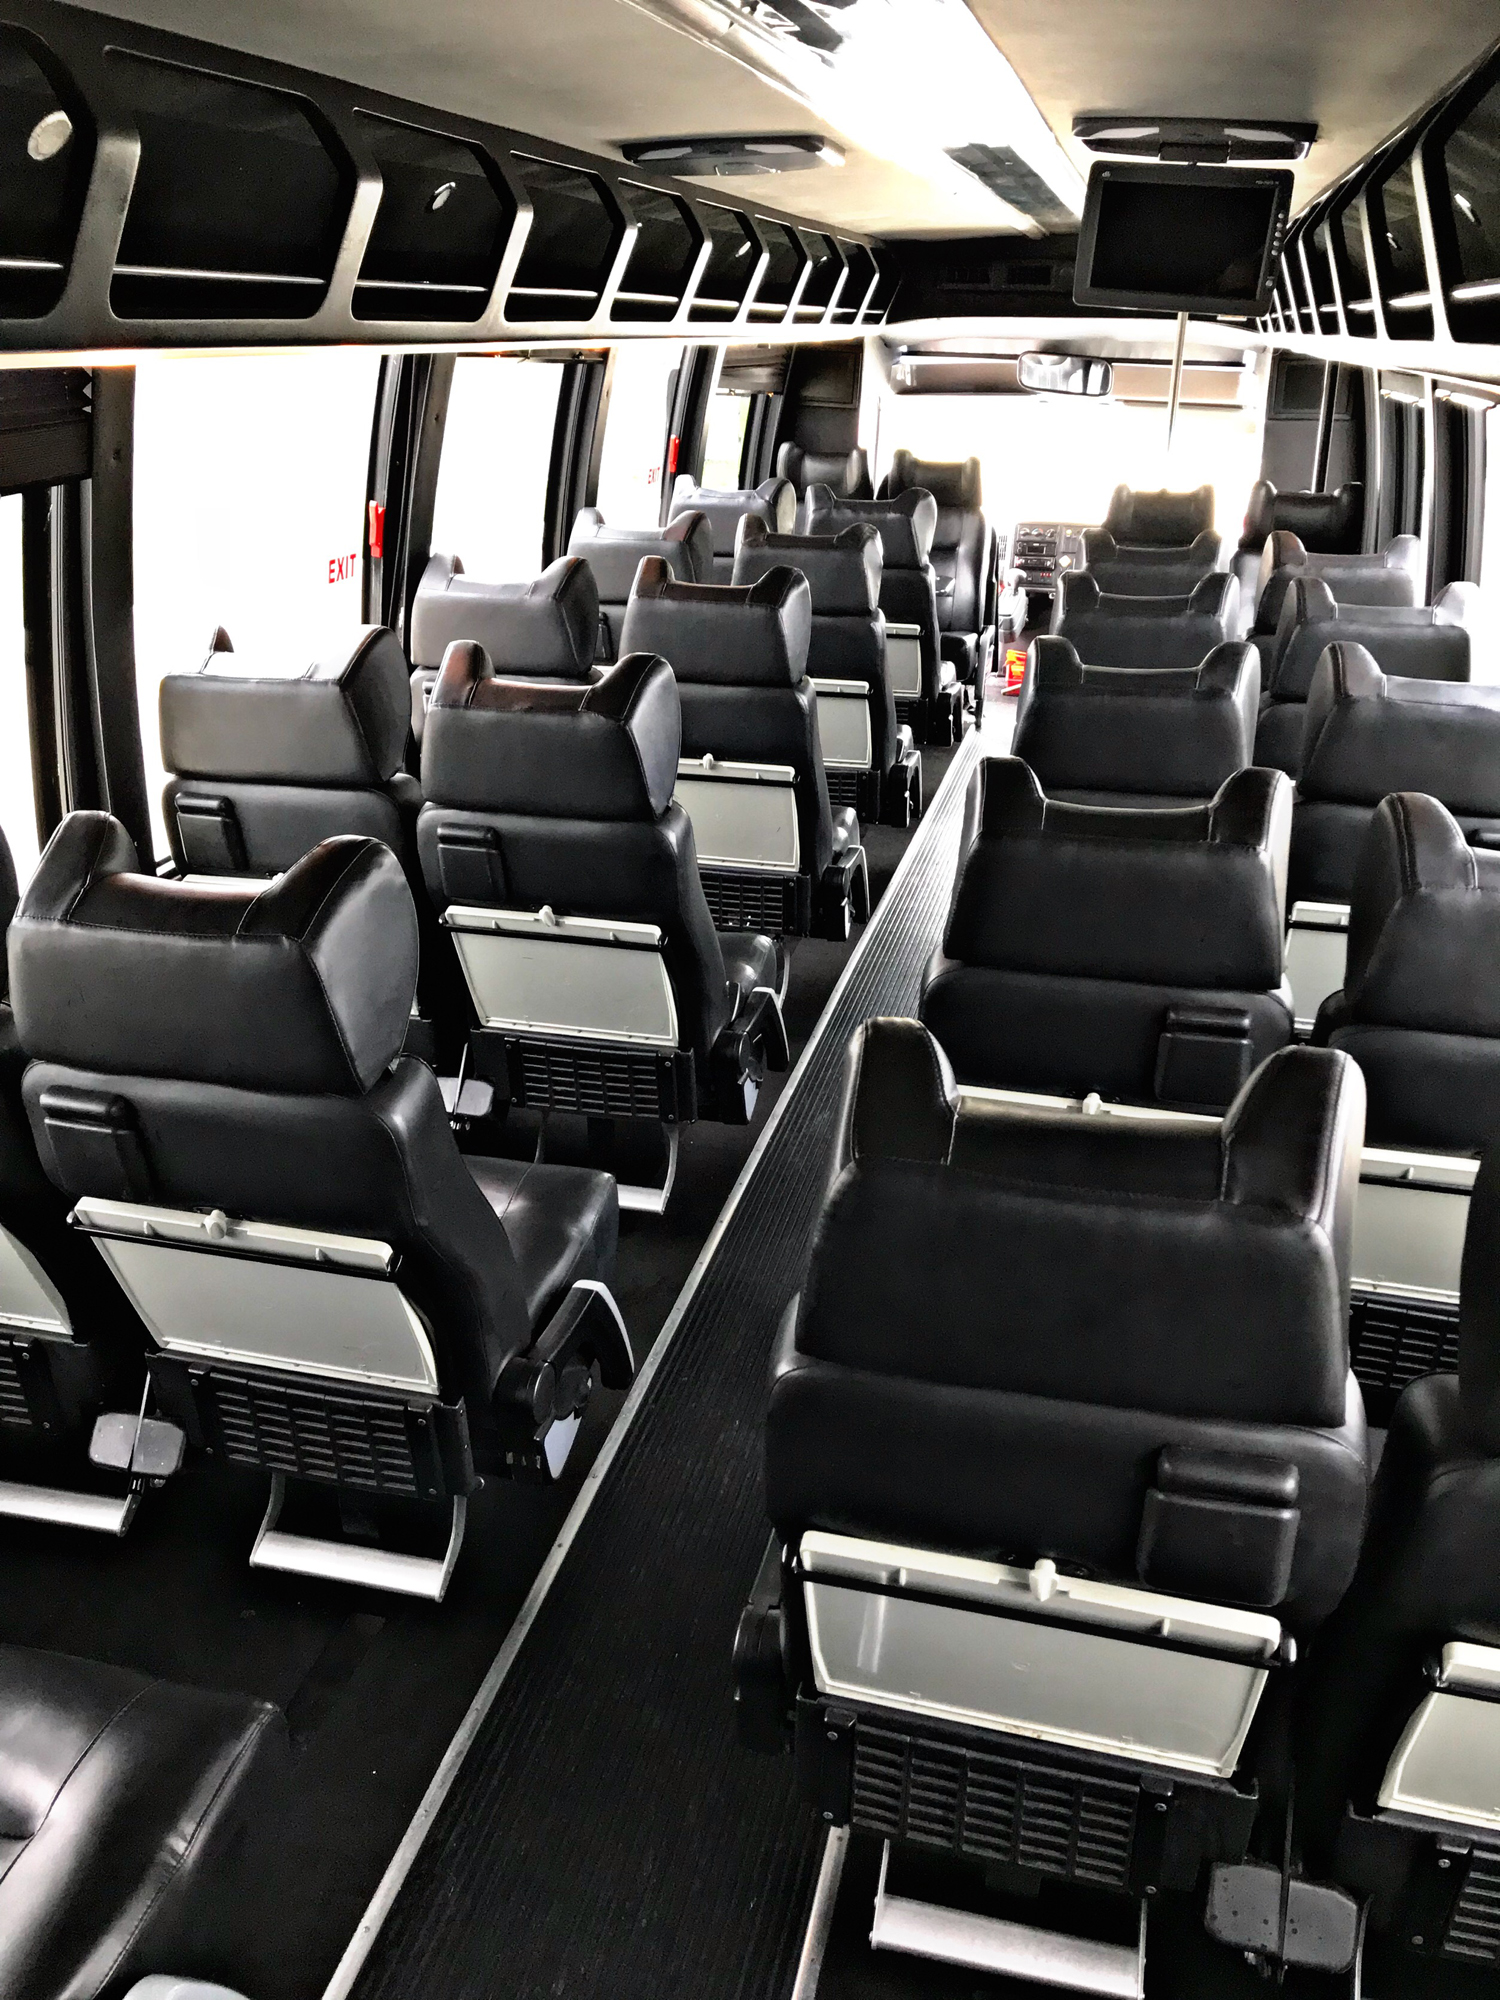 Executive Coach Bus